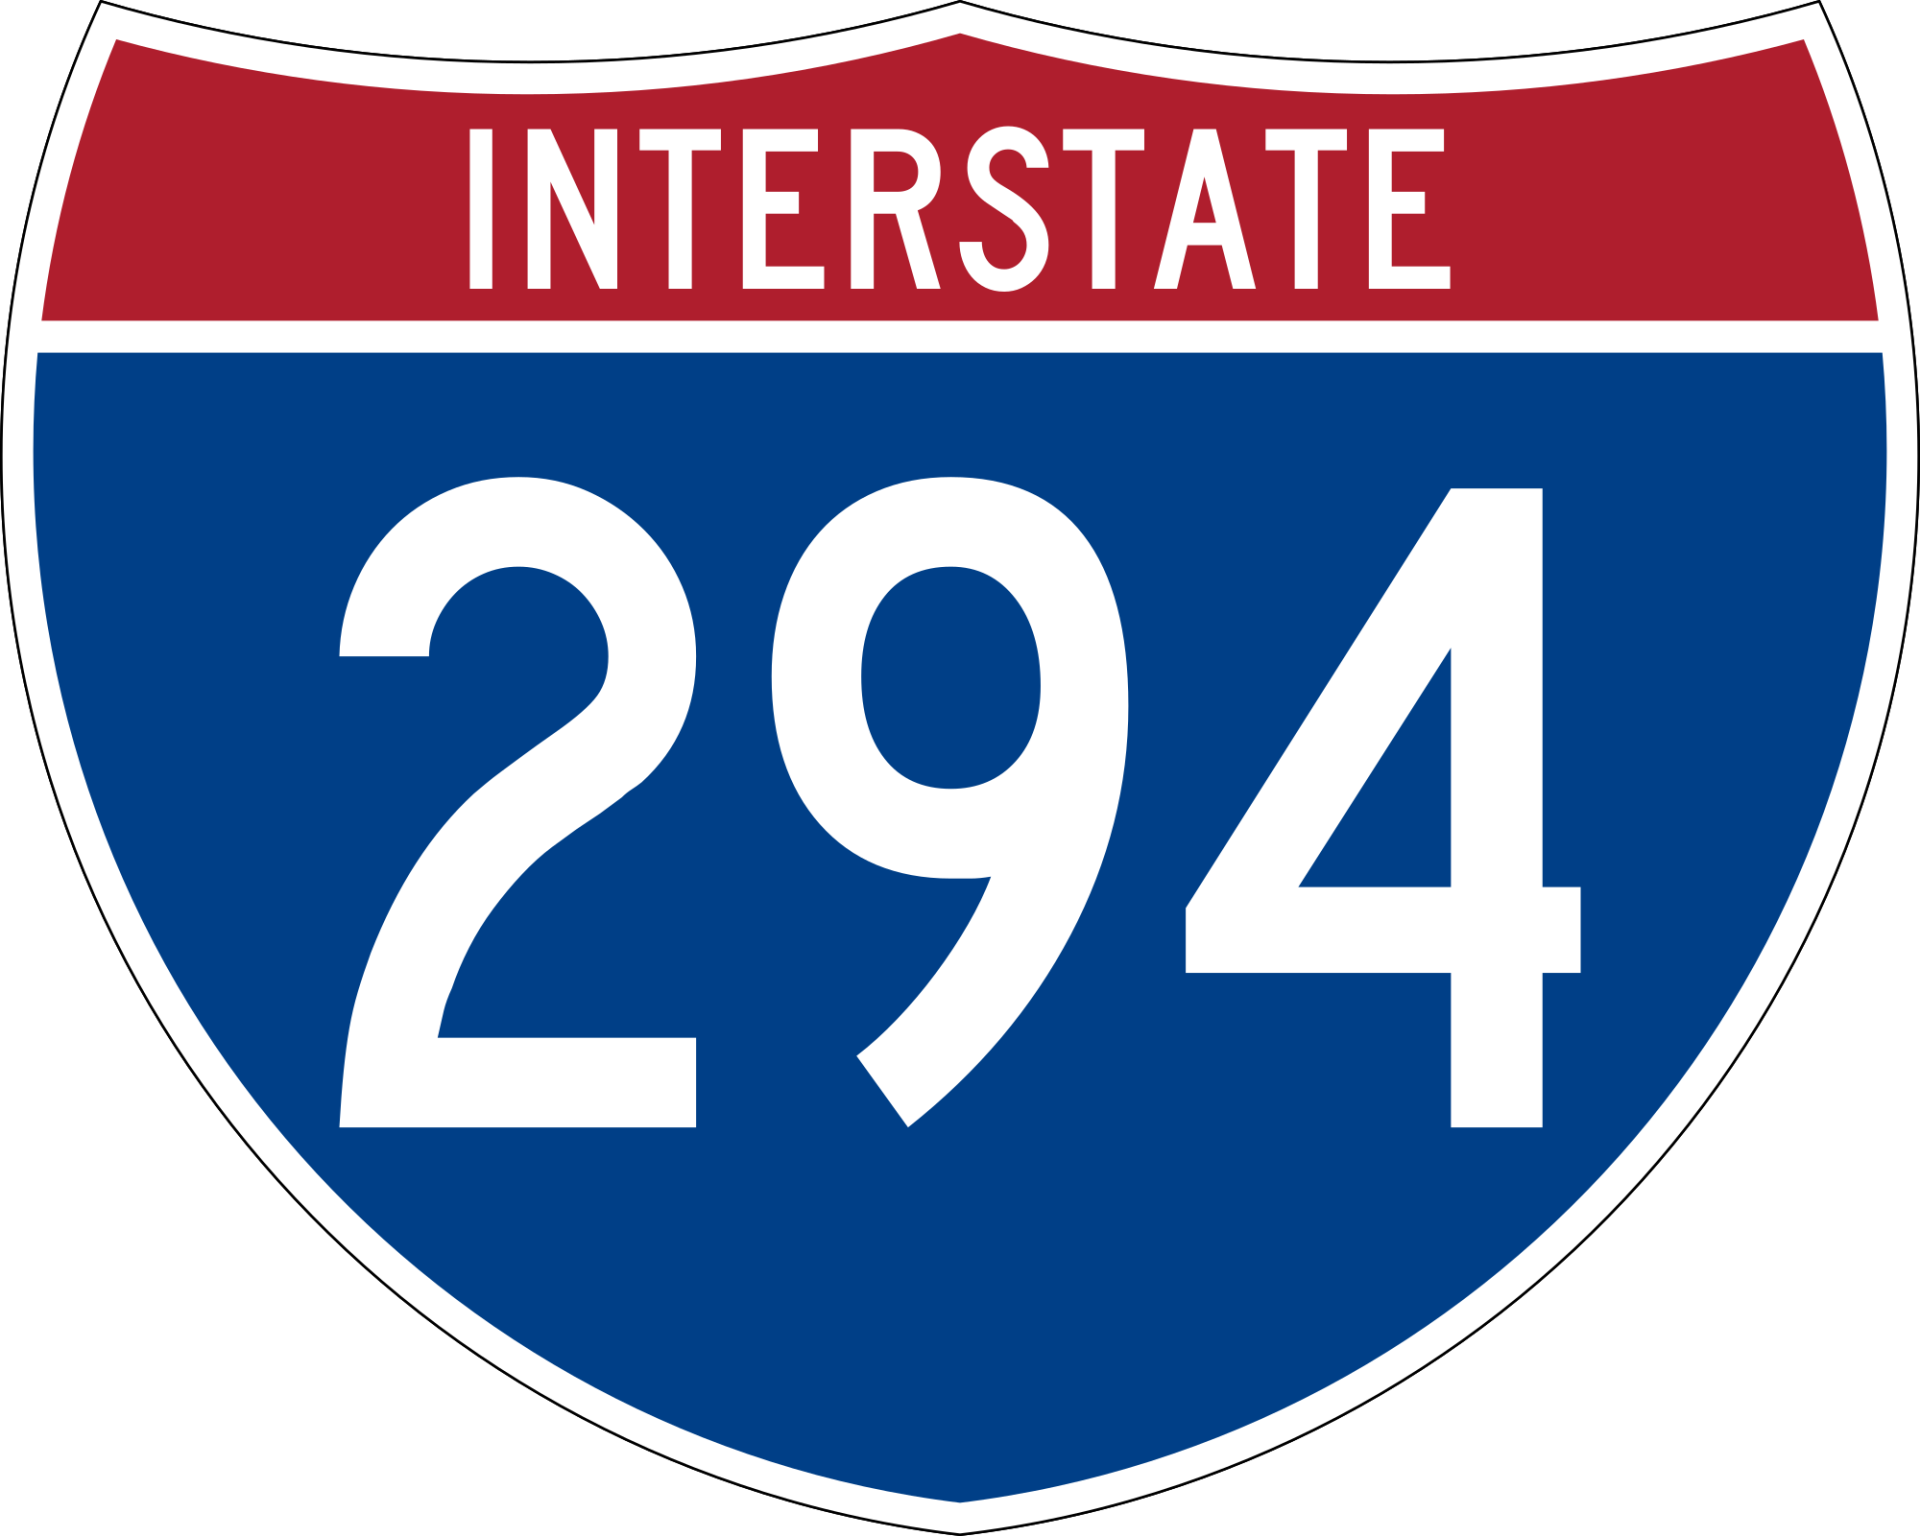 294 Sign